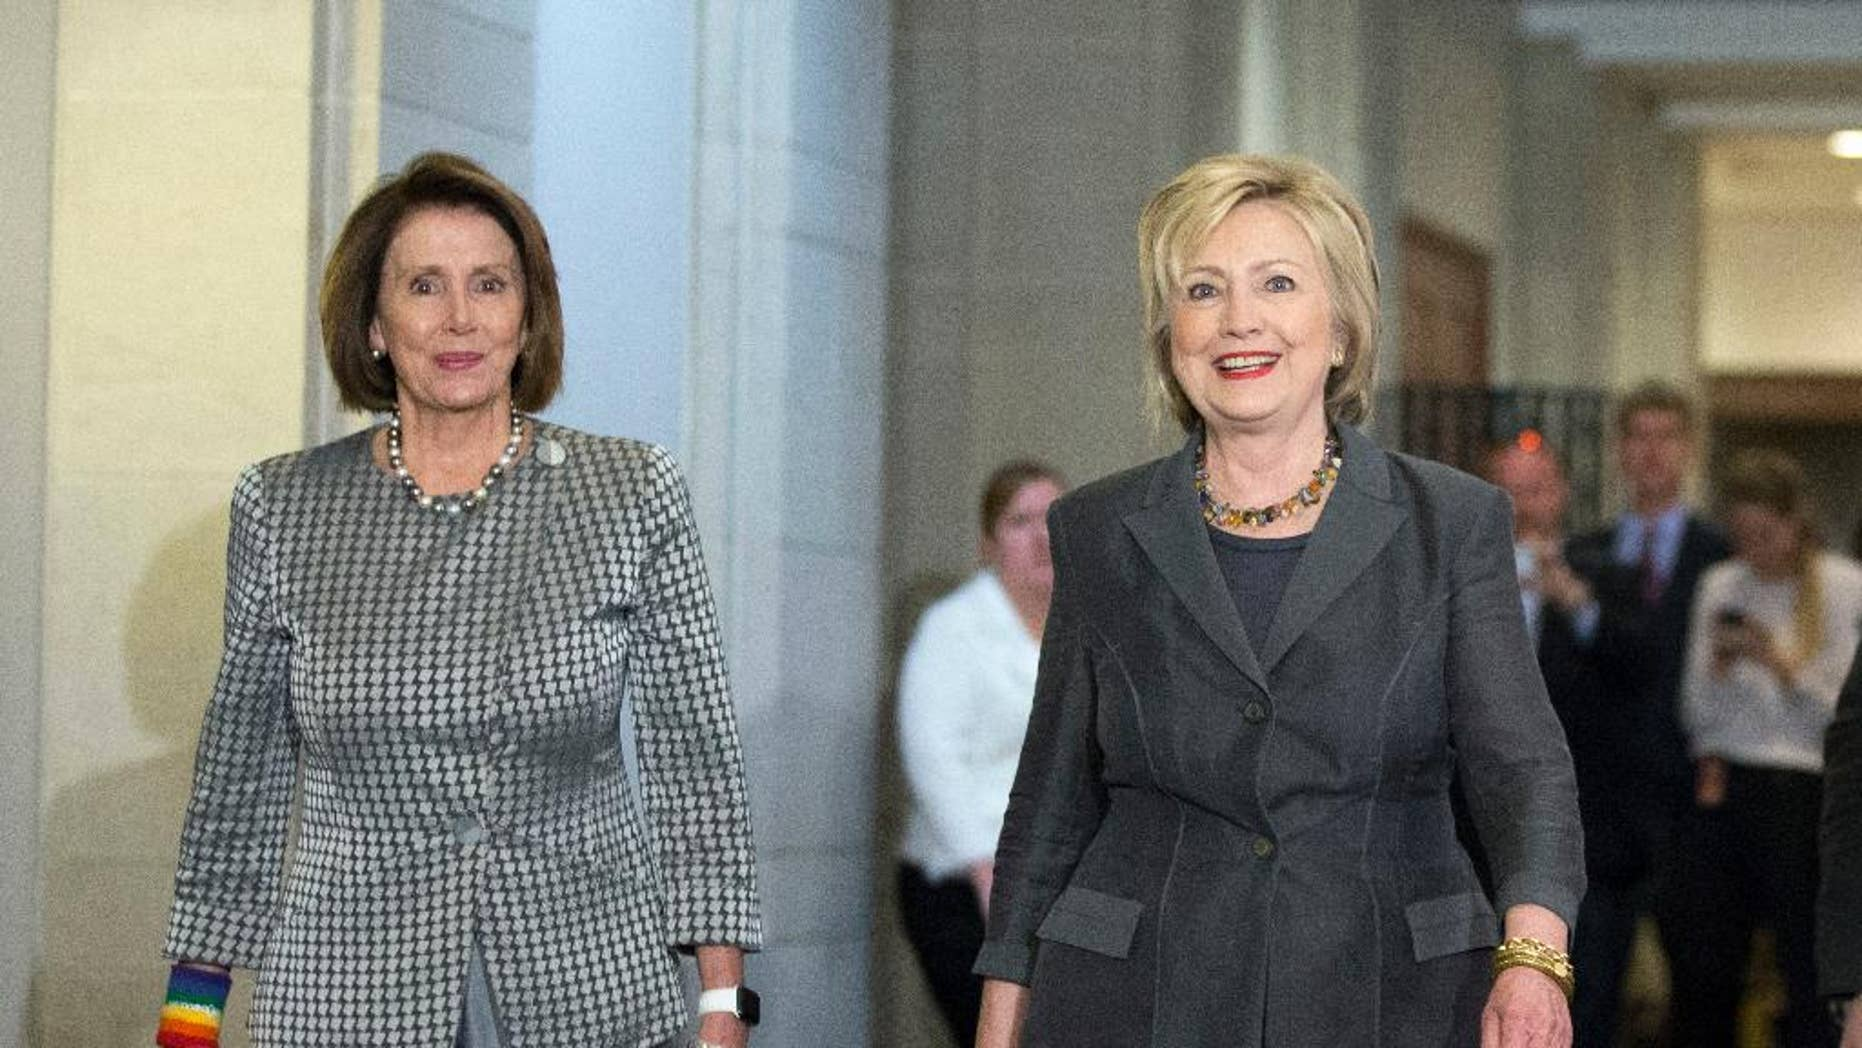 Then-Democratic presidential candidate Hillary Clinton walks with House Minority Leader Nancy Pelosi of Calif. as they arrive for a meeting with the House Democratic Caucus, Wednesday, June 22, 2016, on Capitol Hill in Washington. (AP Photo/Alex Brandon)